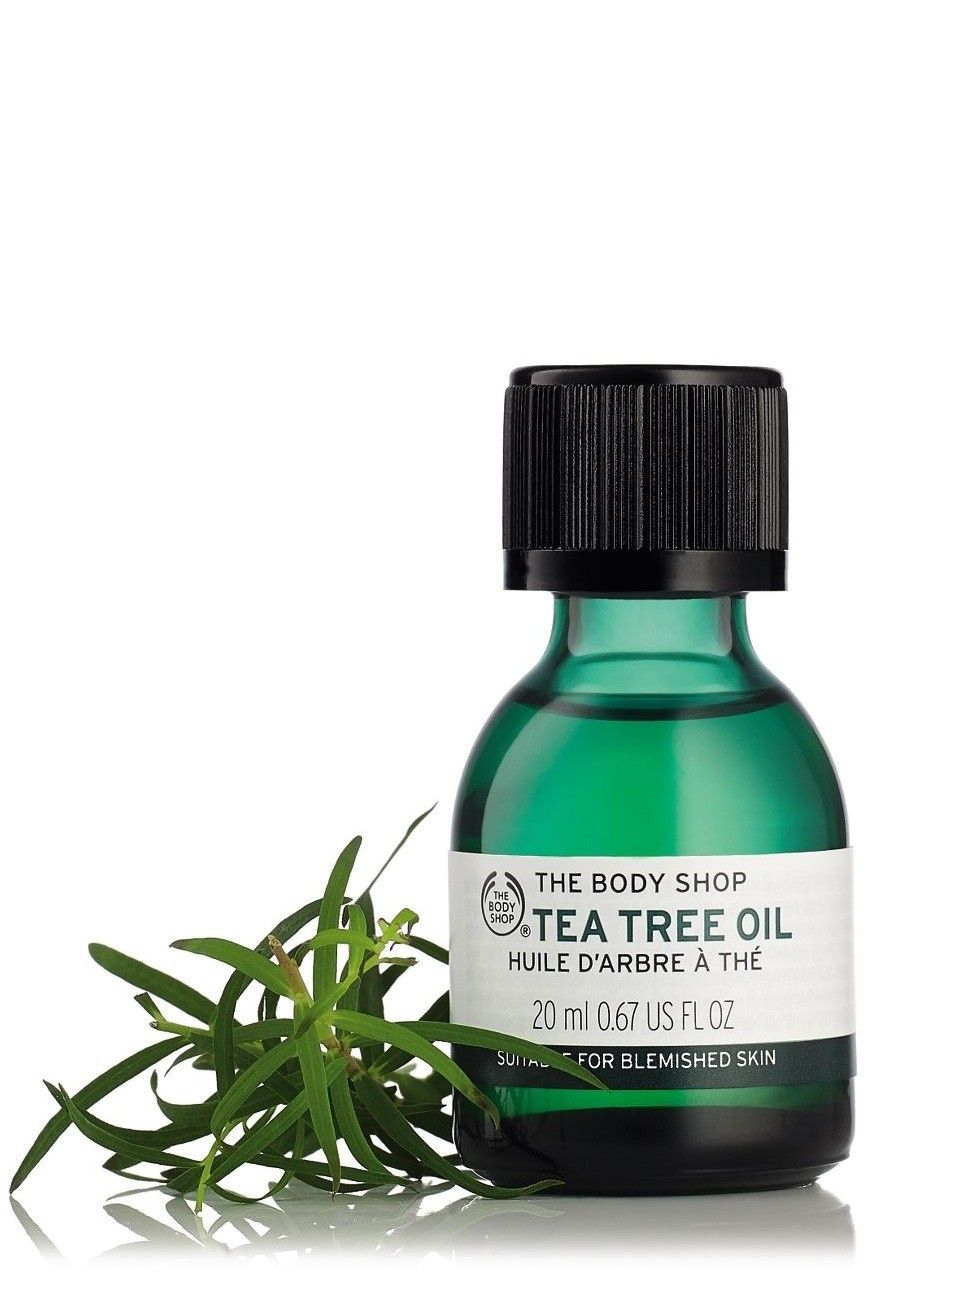 Knockout women's yeast infection with tea tree essential oil